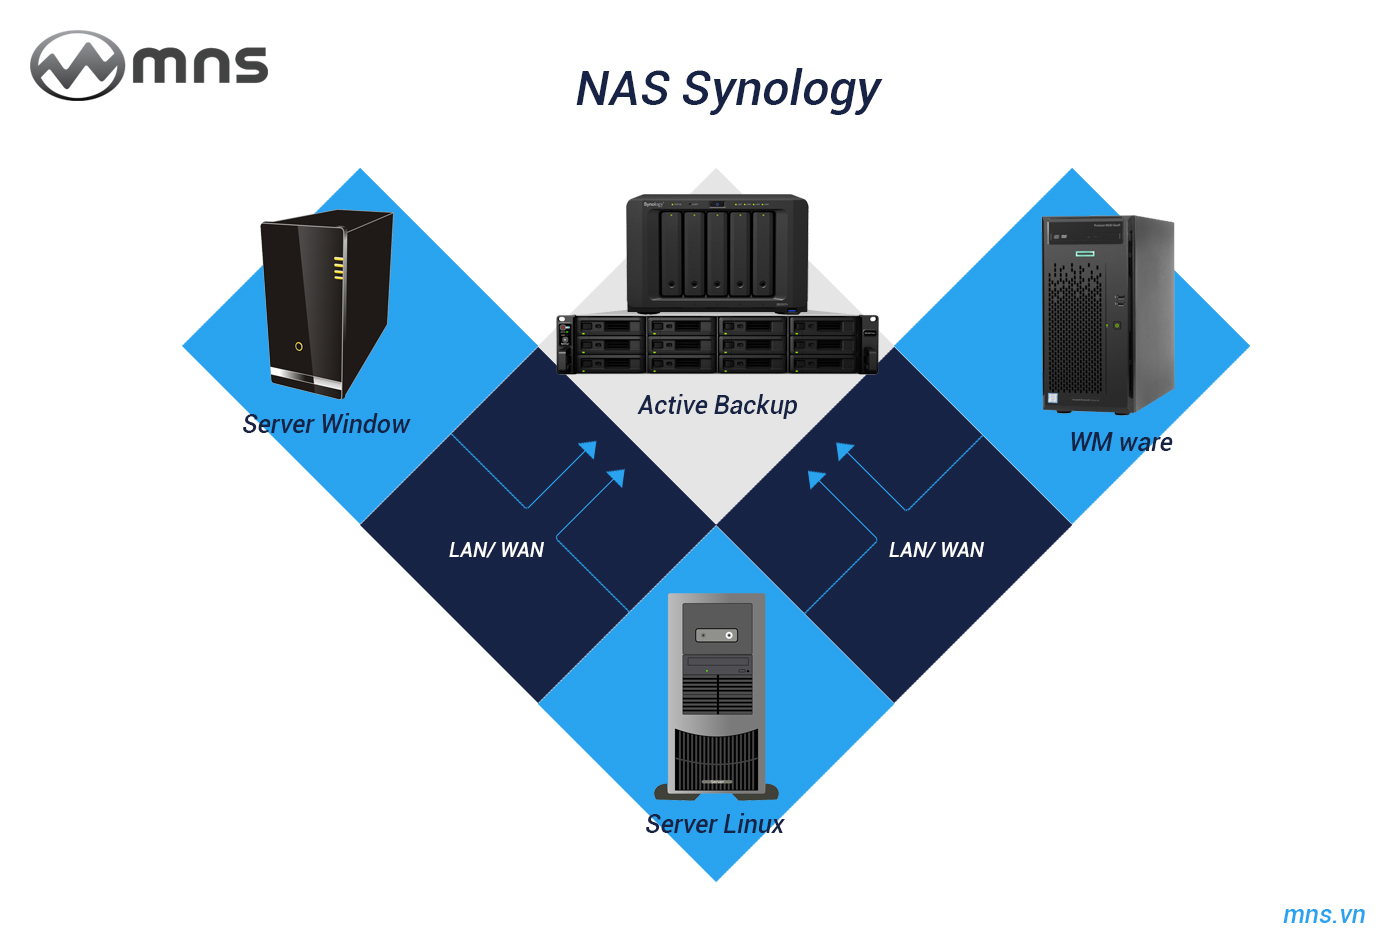 mns-nas-synology-backup-data-server-pc-laptop-wmwave